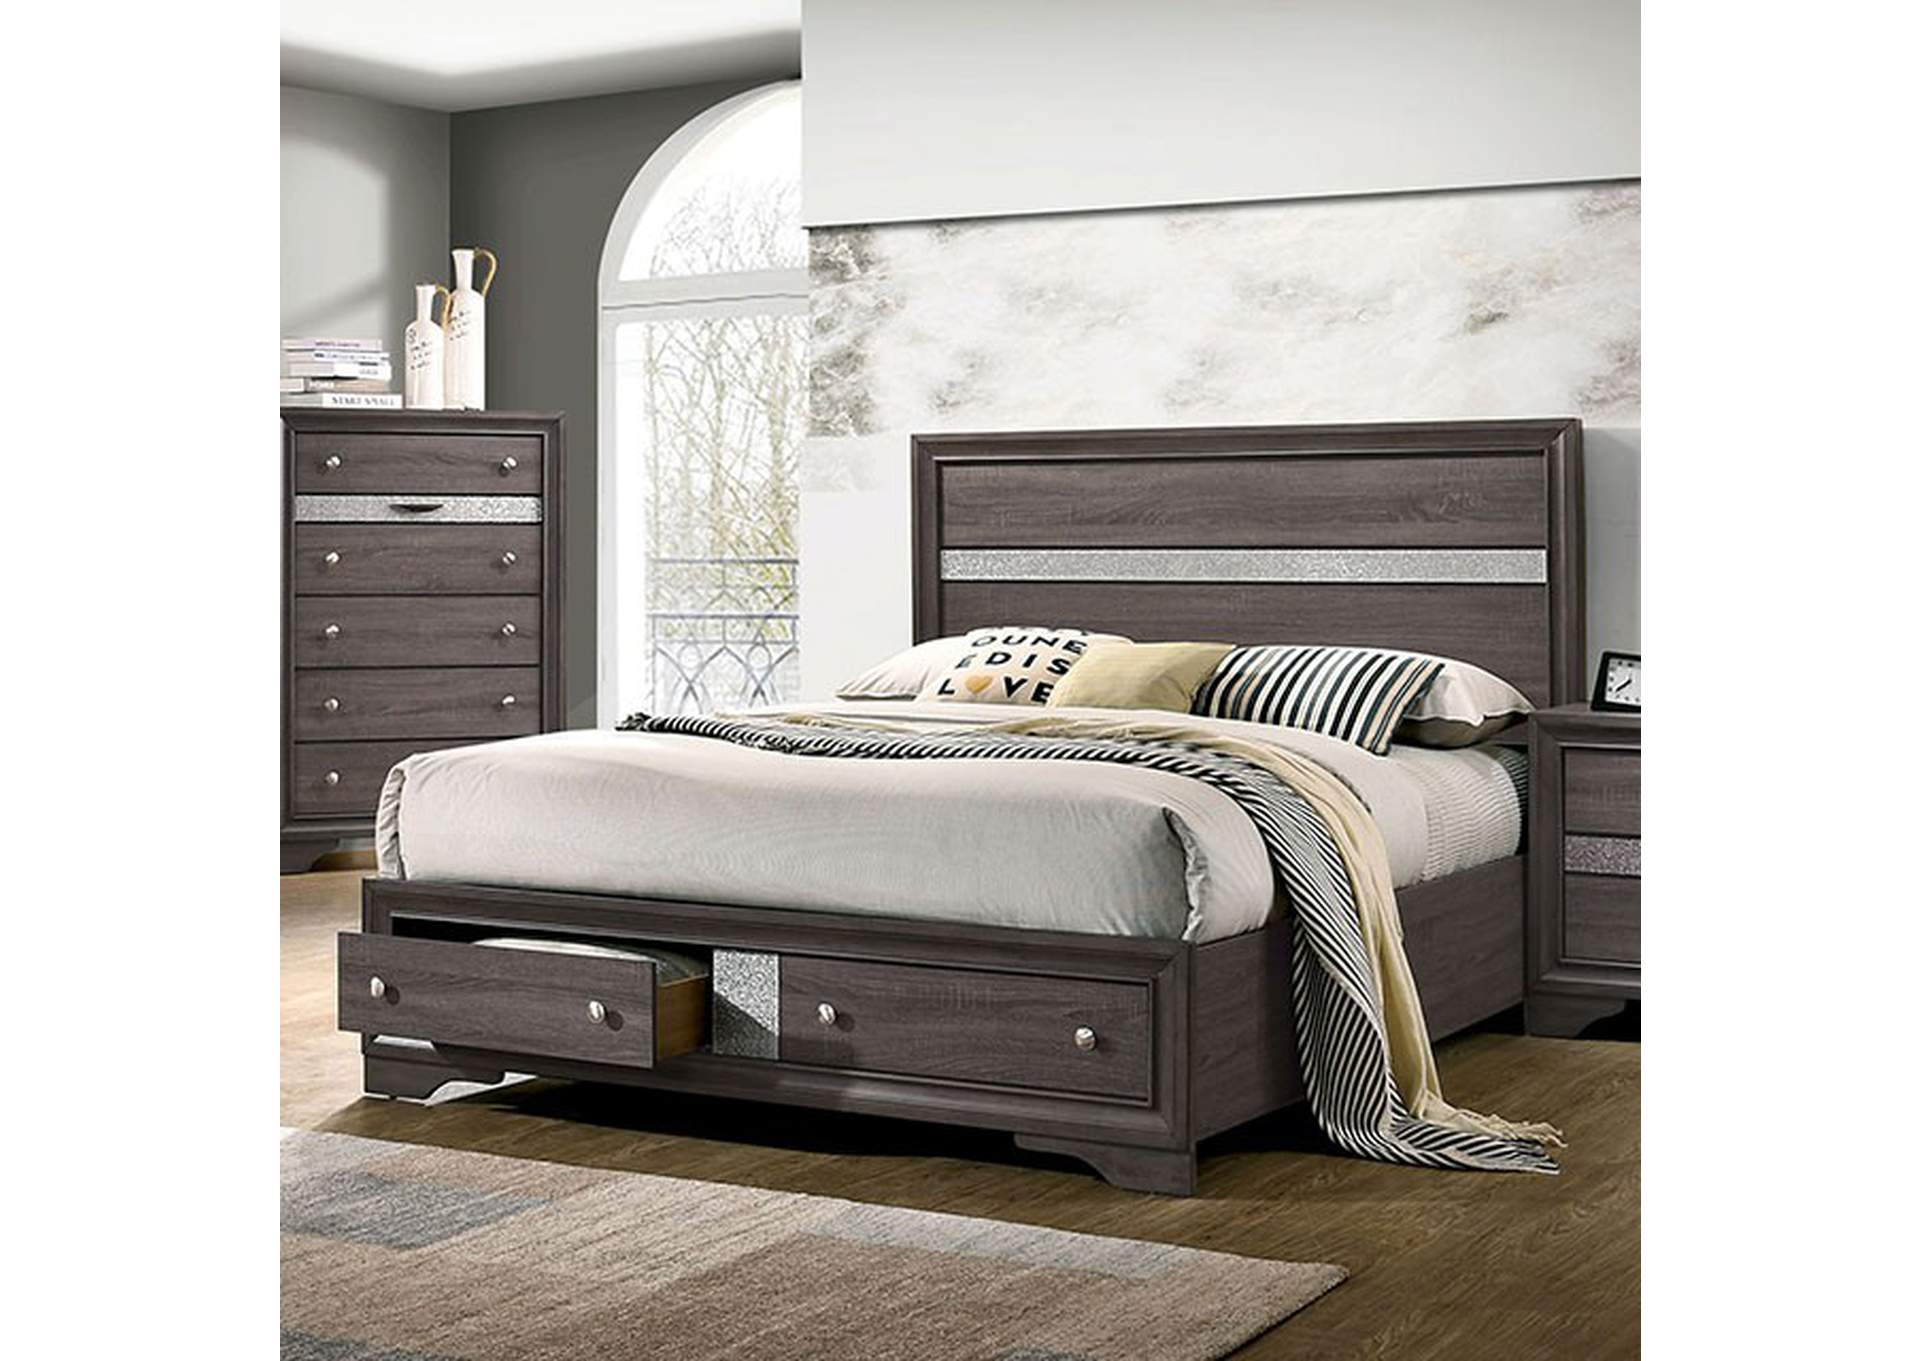 Chrissy Gray Queen Bed,Furniture of America